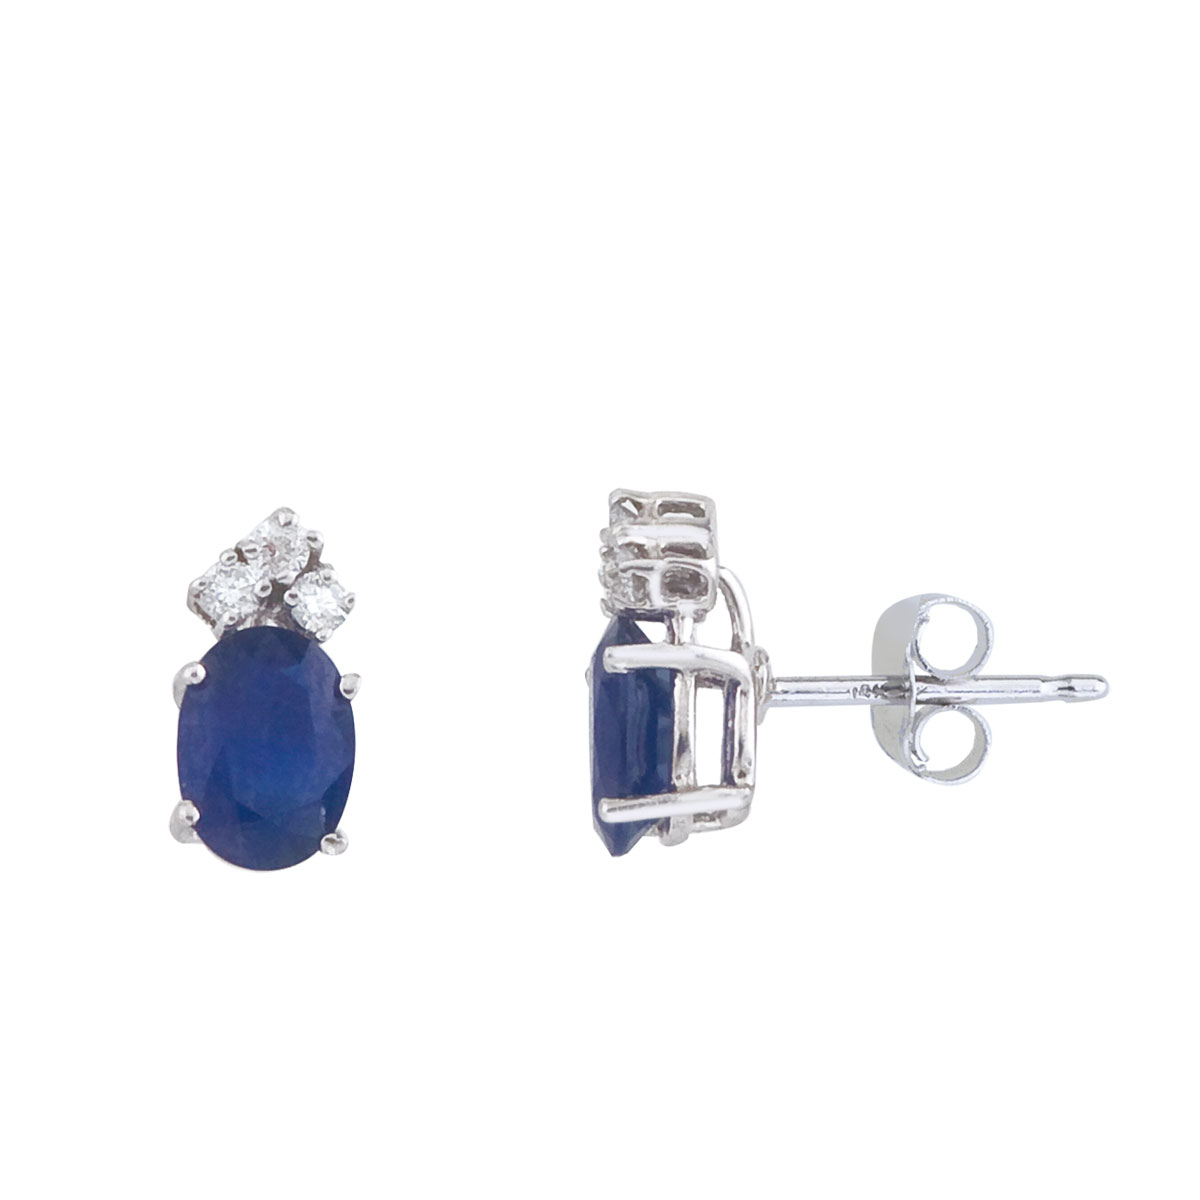 These 7x5 mm oval shaped sapphire earrings are set in beautiful 14k white gold and feature .12 to...